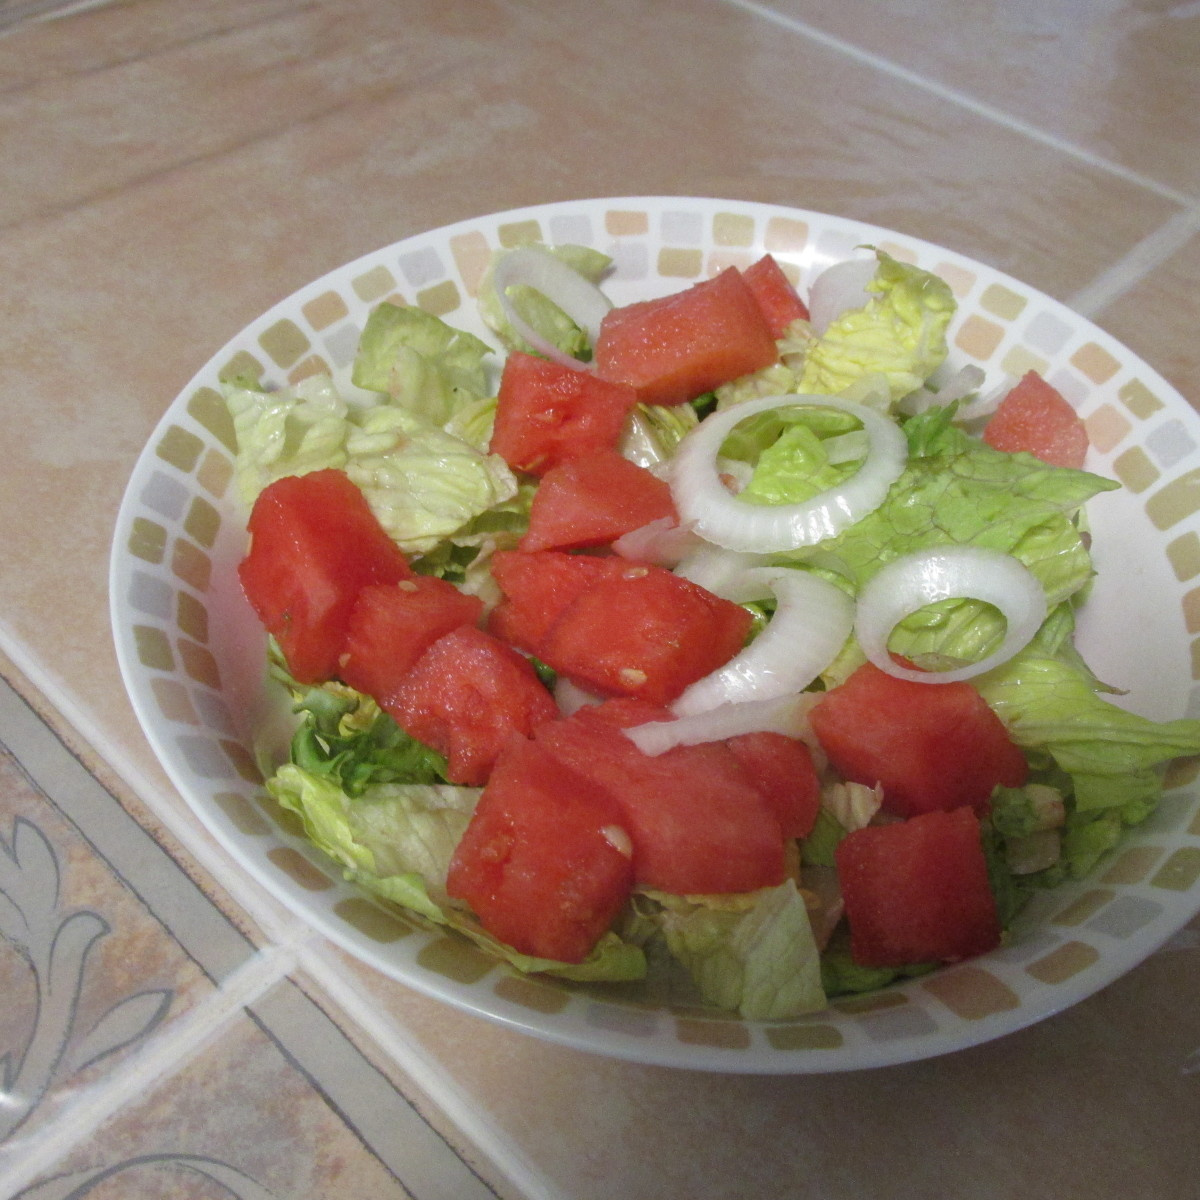 Salad with cubed watermelon